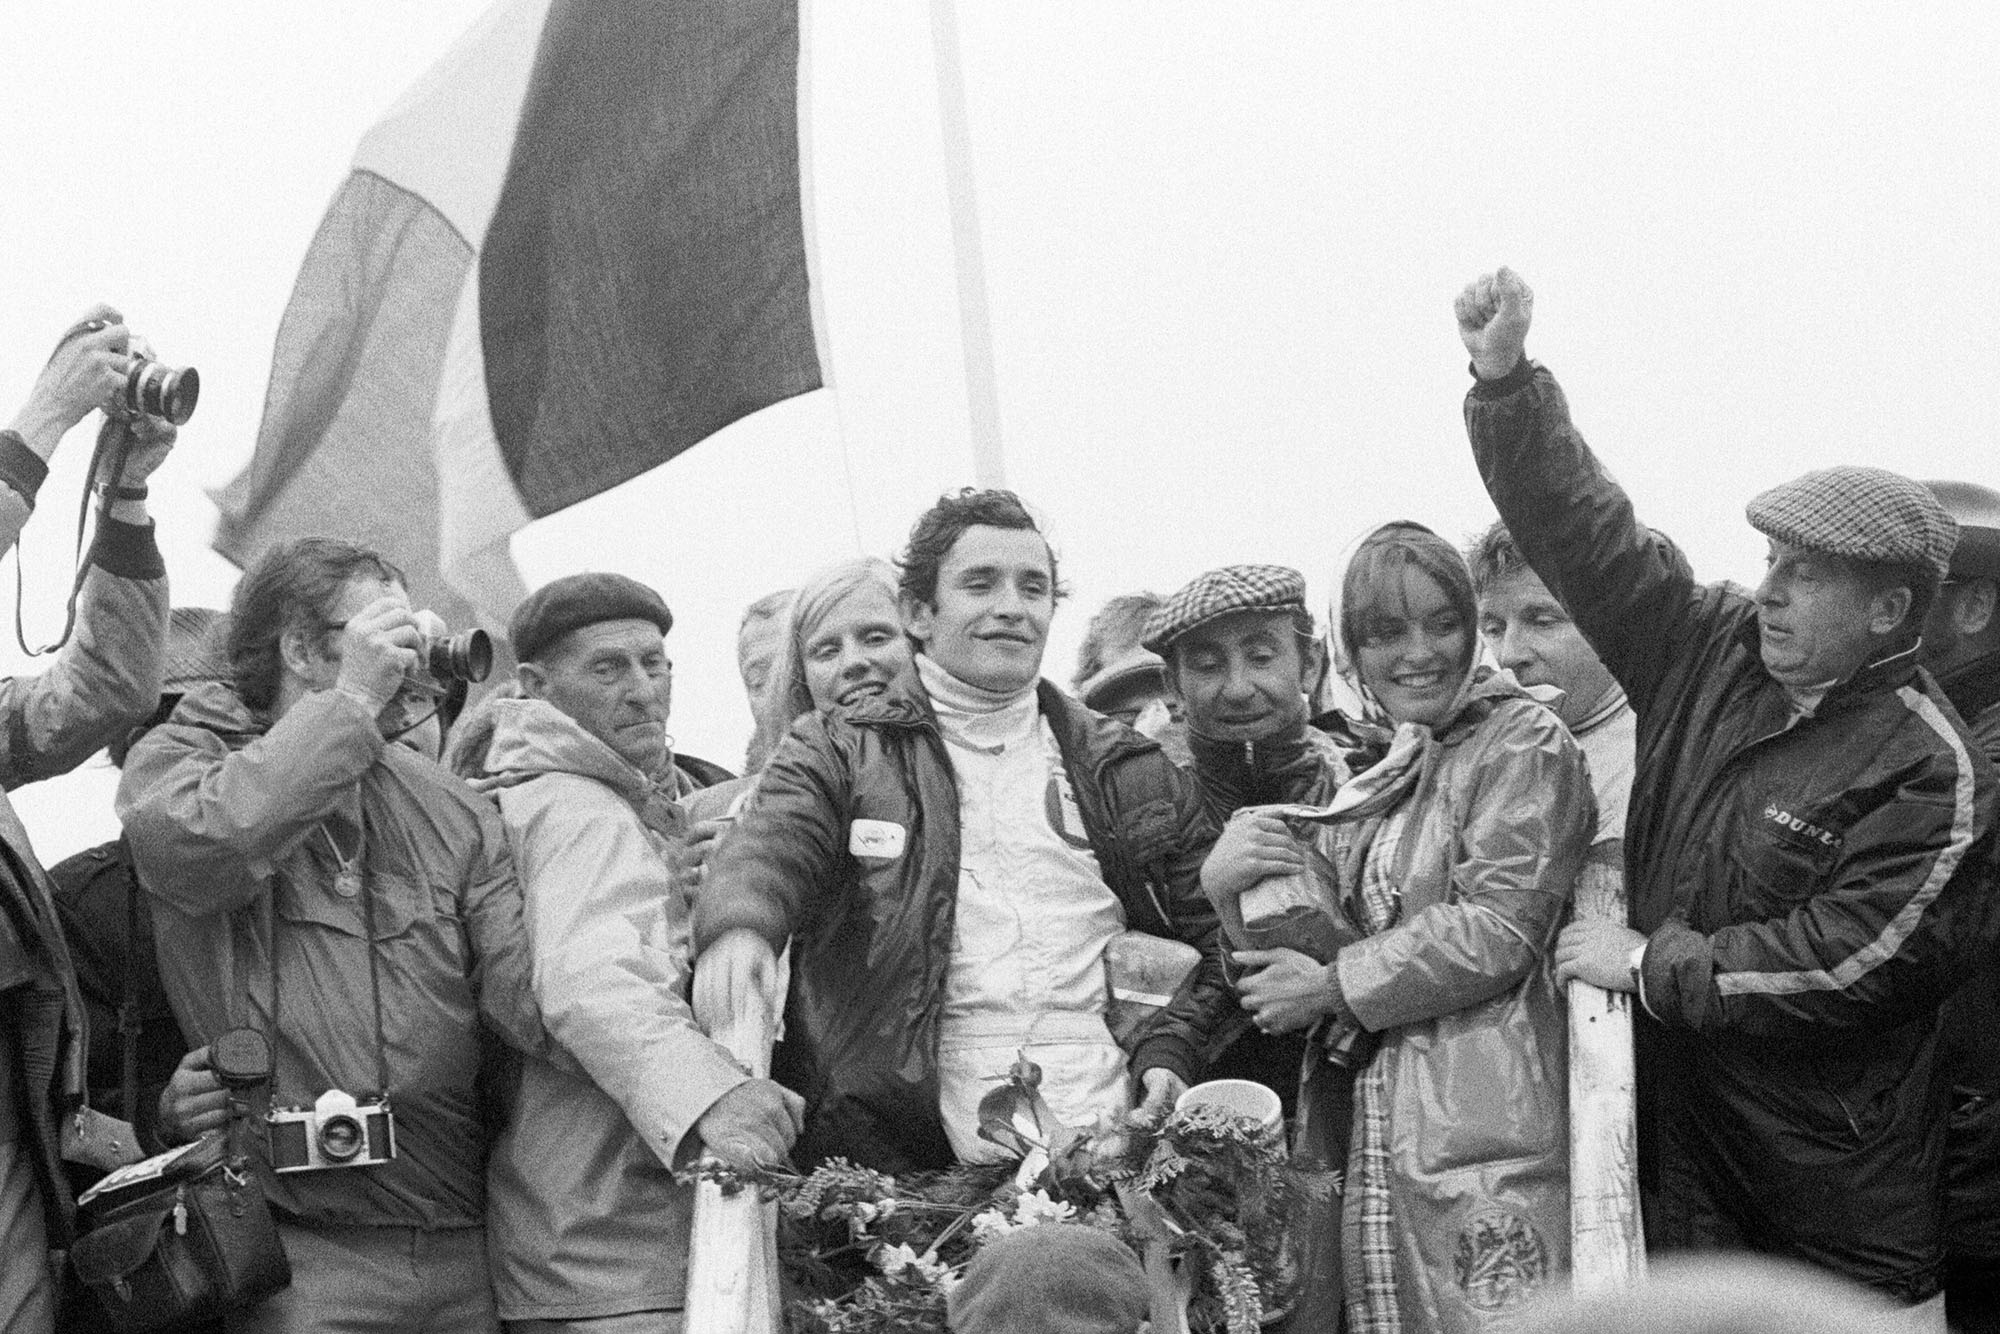 Jacky Ickx celebrates his win on the podium after emerging victorious at the 1971 Dutch Grand Prix.